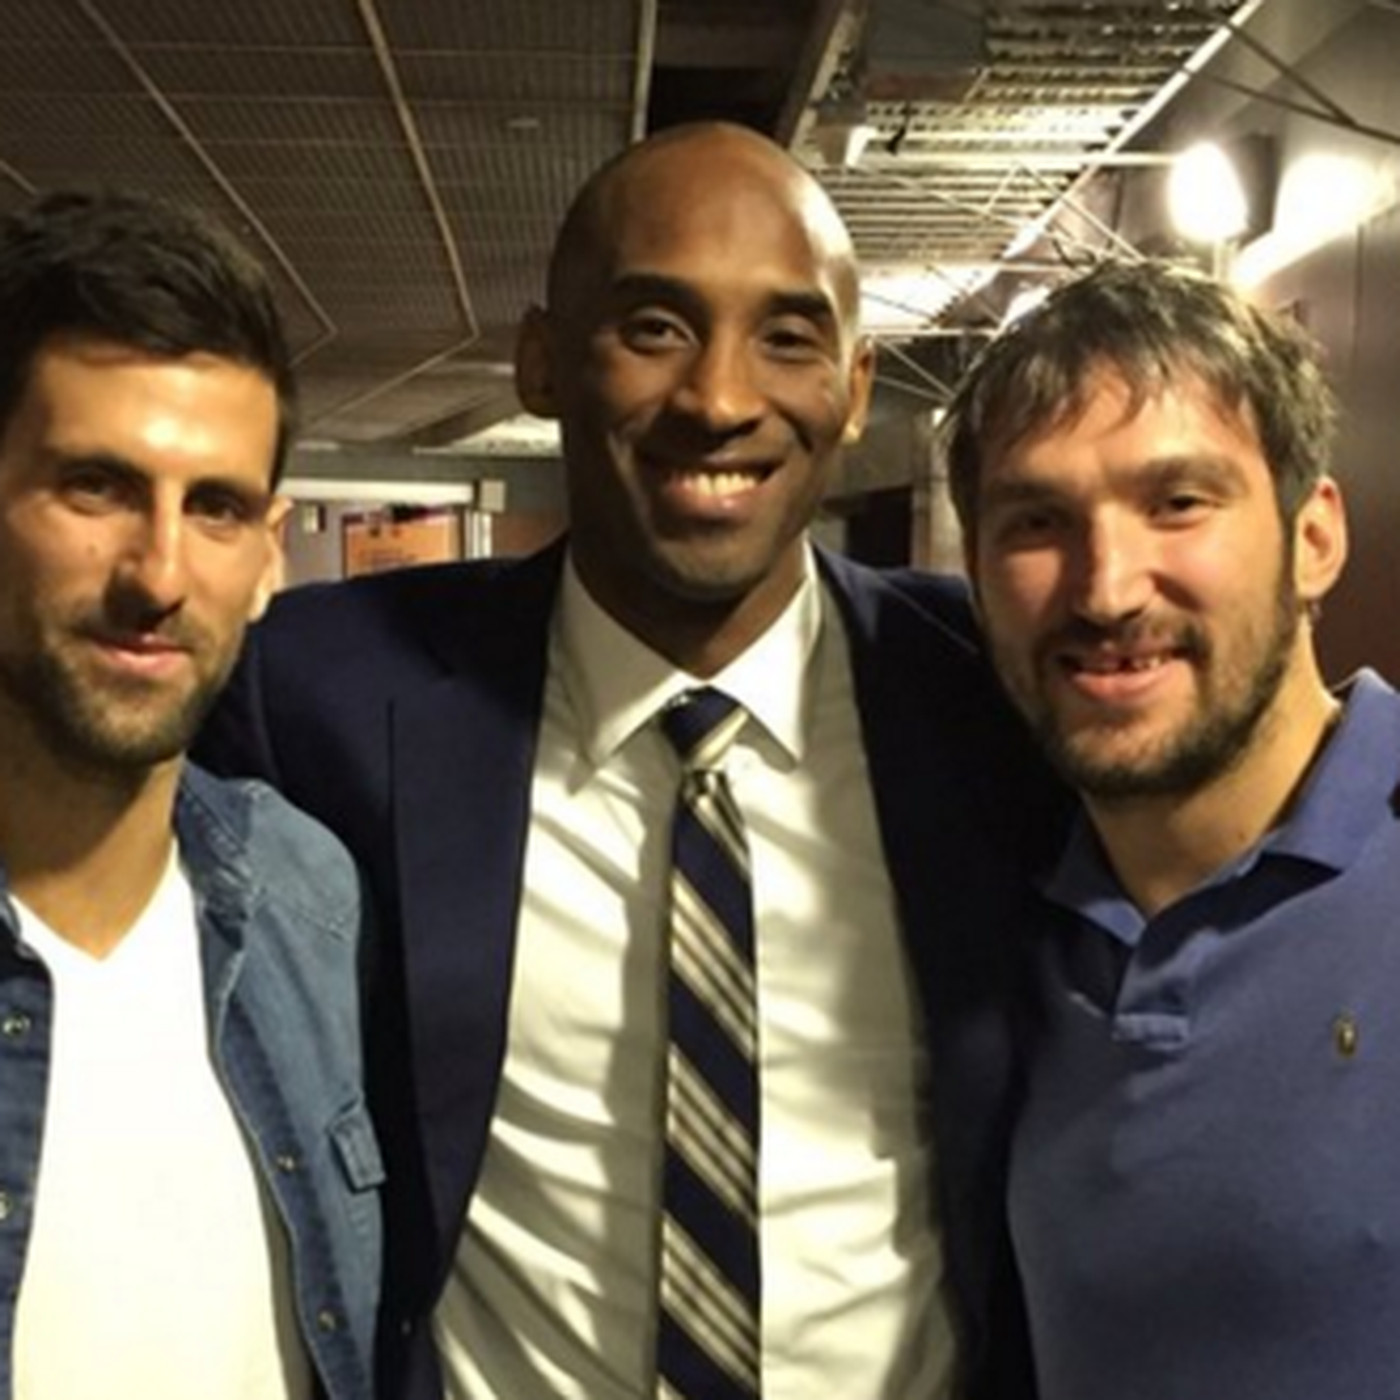 Kobe Bryant Novak Djokovic And Alex Ovechkin Fit As Much Greatness As They Could Into One Photo Sbnation Com